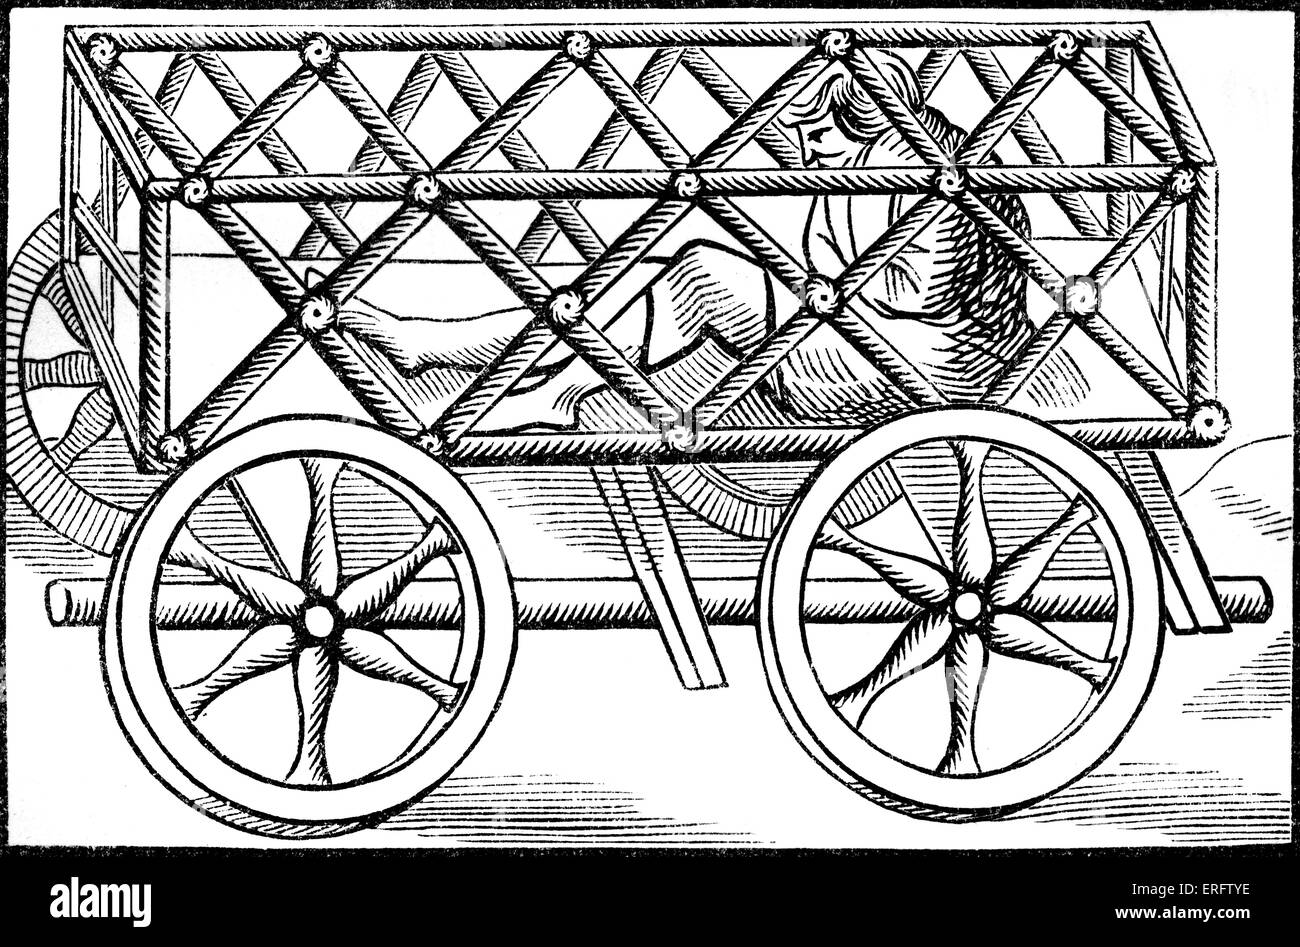 Medieval movable iron cage. Woodcuts in the 'Cosmographic Universelle' of Munster 1552. - Stock Image